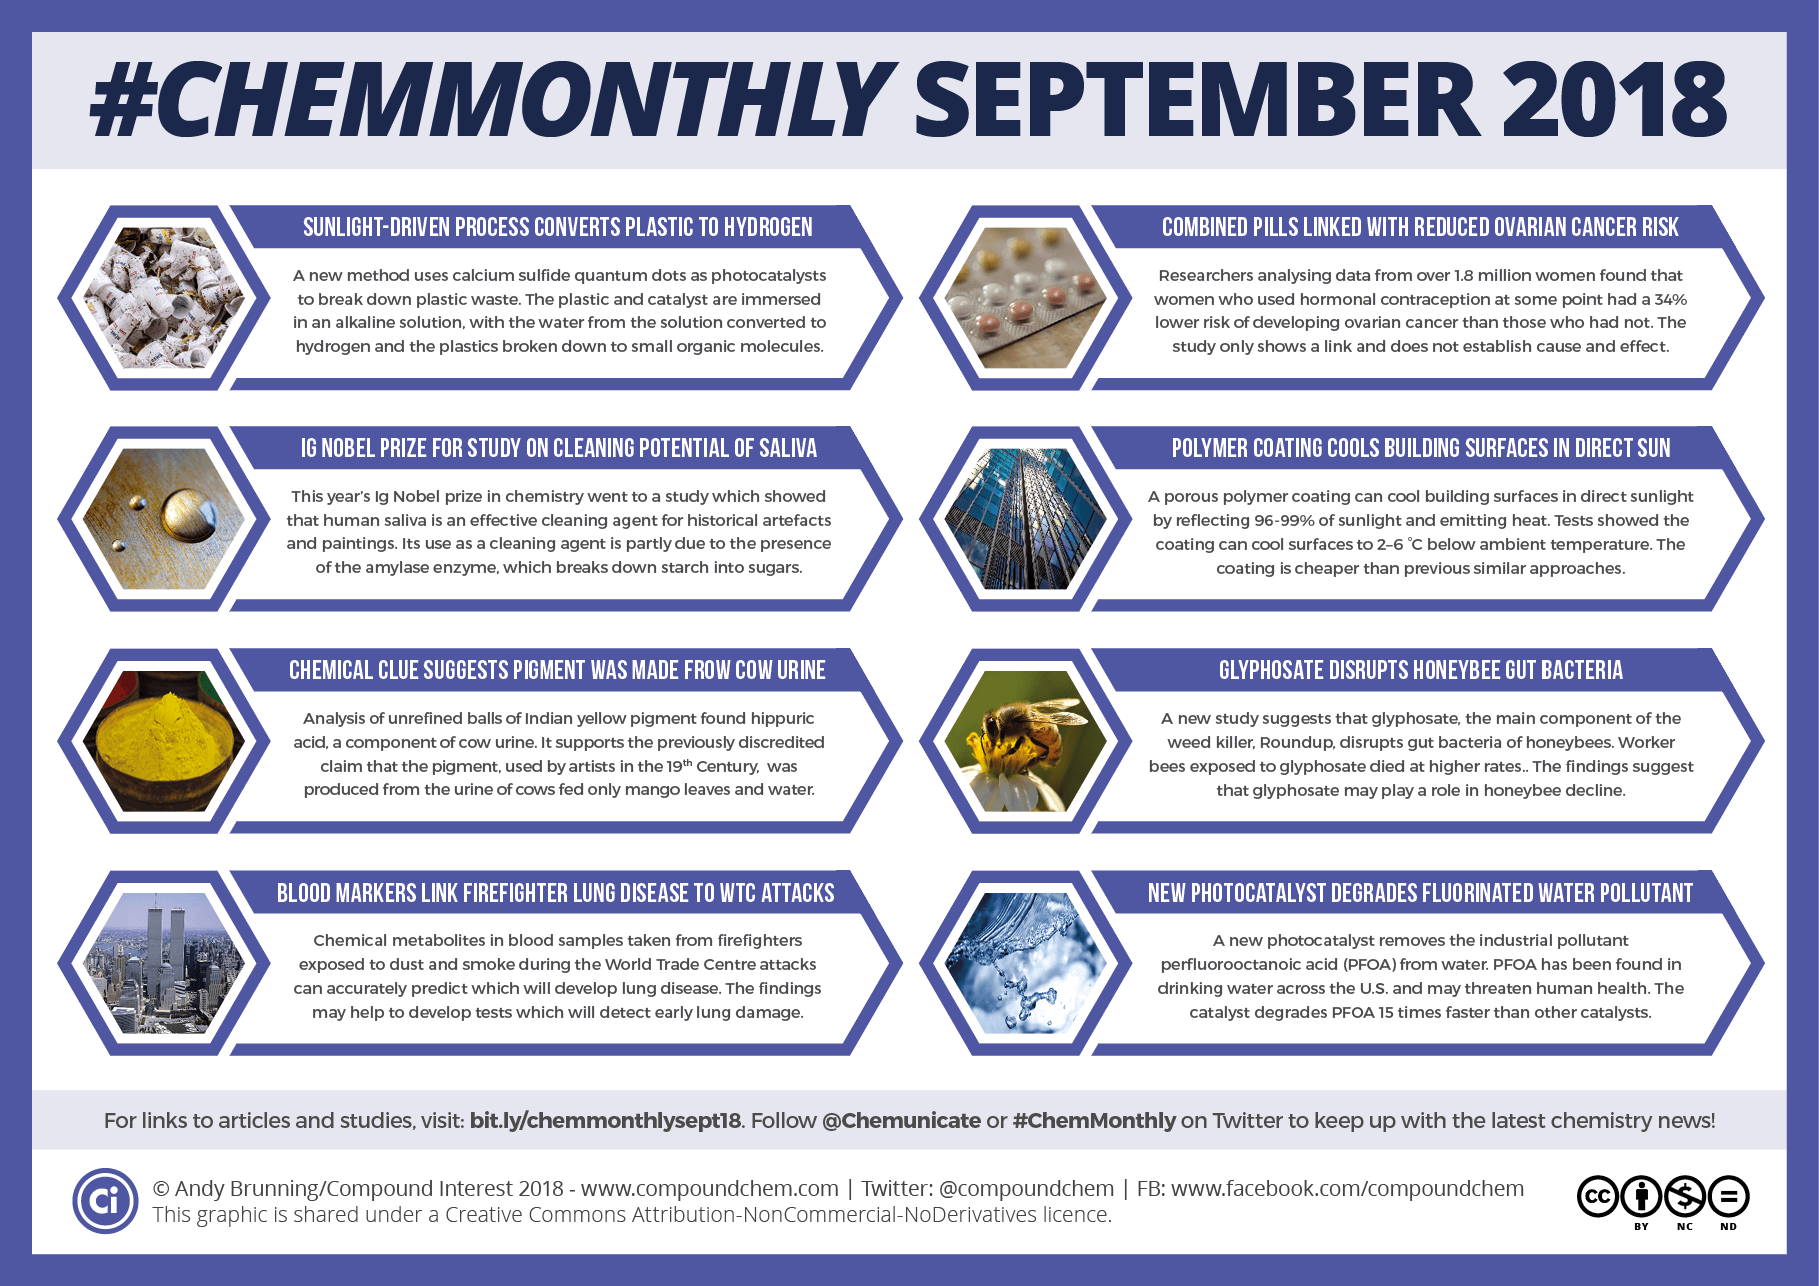 #ChemMonthly September 2018: Hydrogen from plastic waste, the cleaning potential of saliva, and glyphosate's effect on honeybees